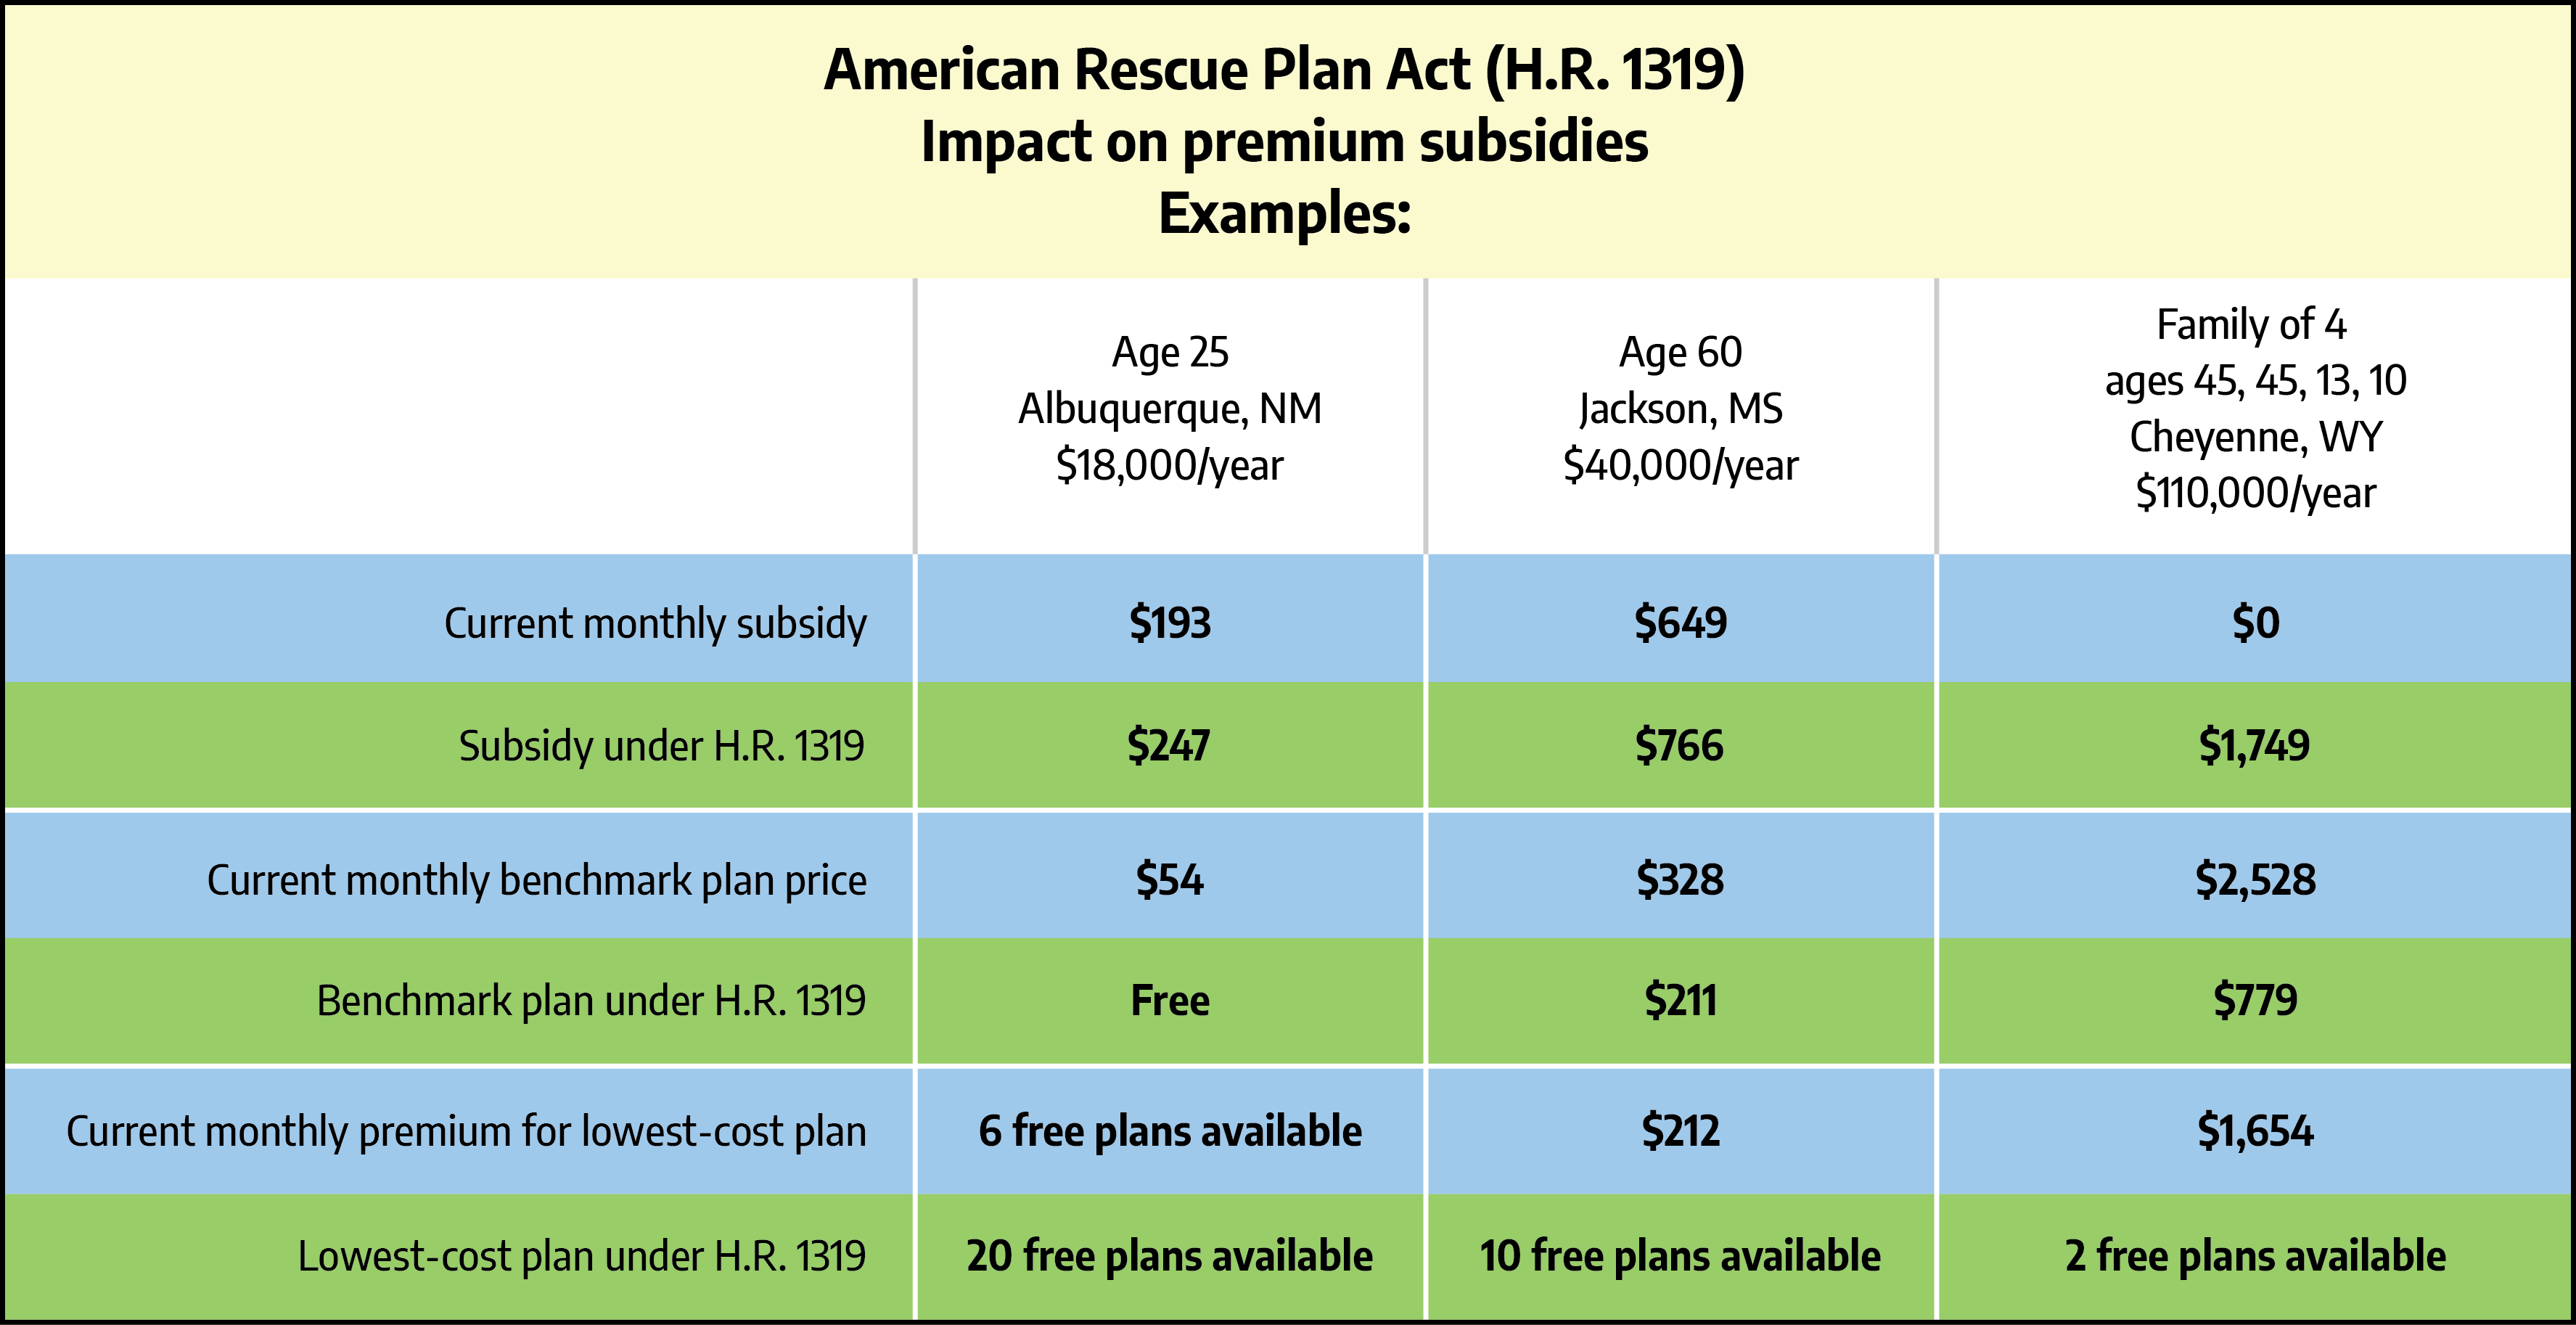 American Rescue Plan Act impact on health insurance subsidies